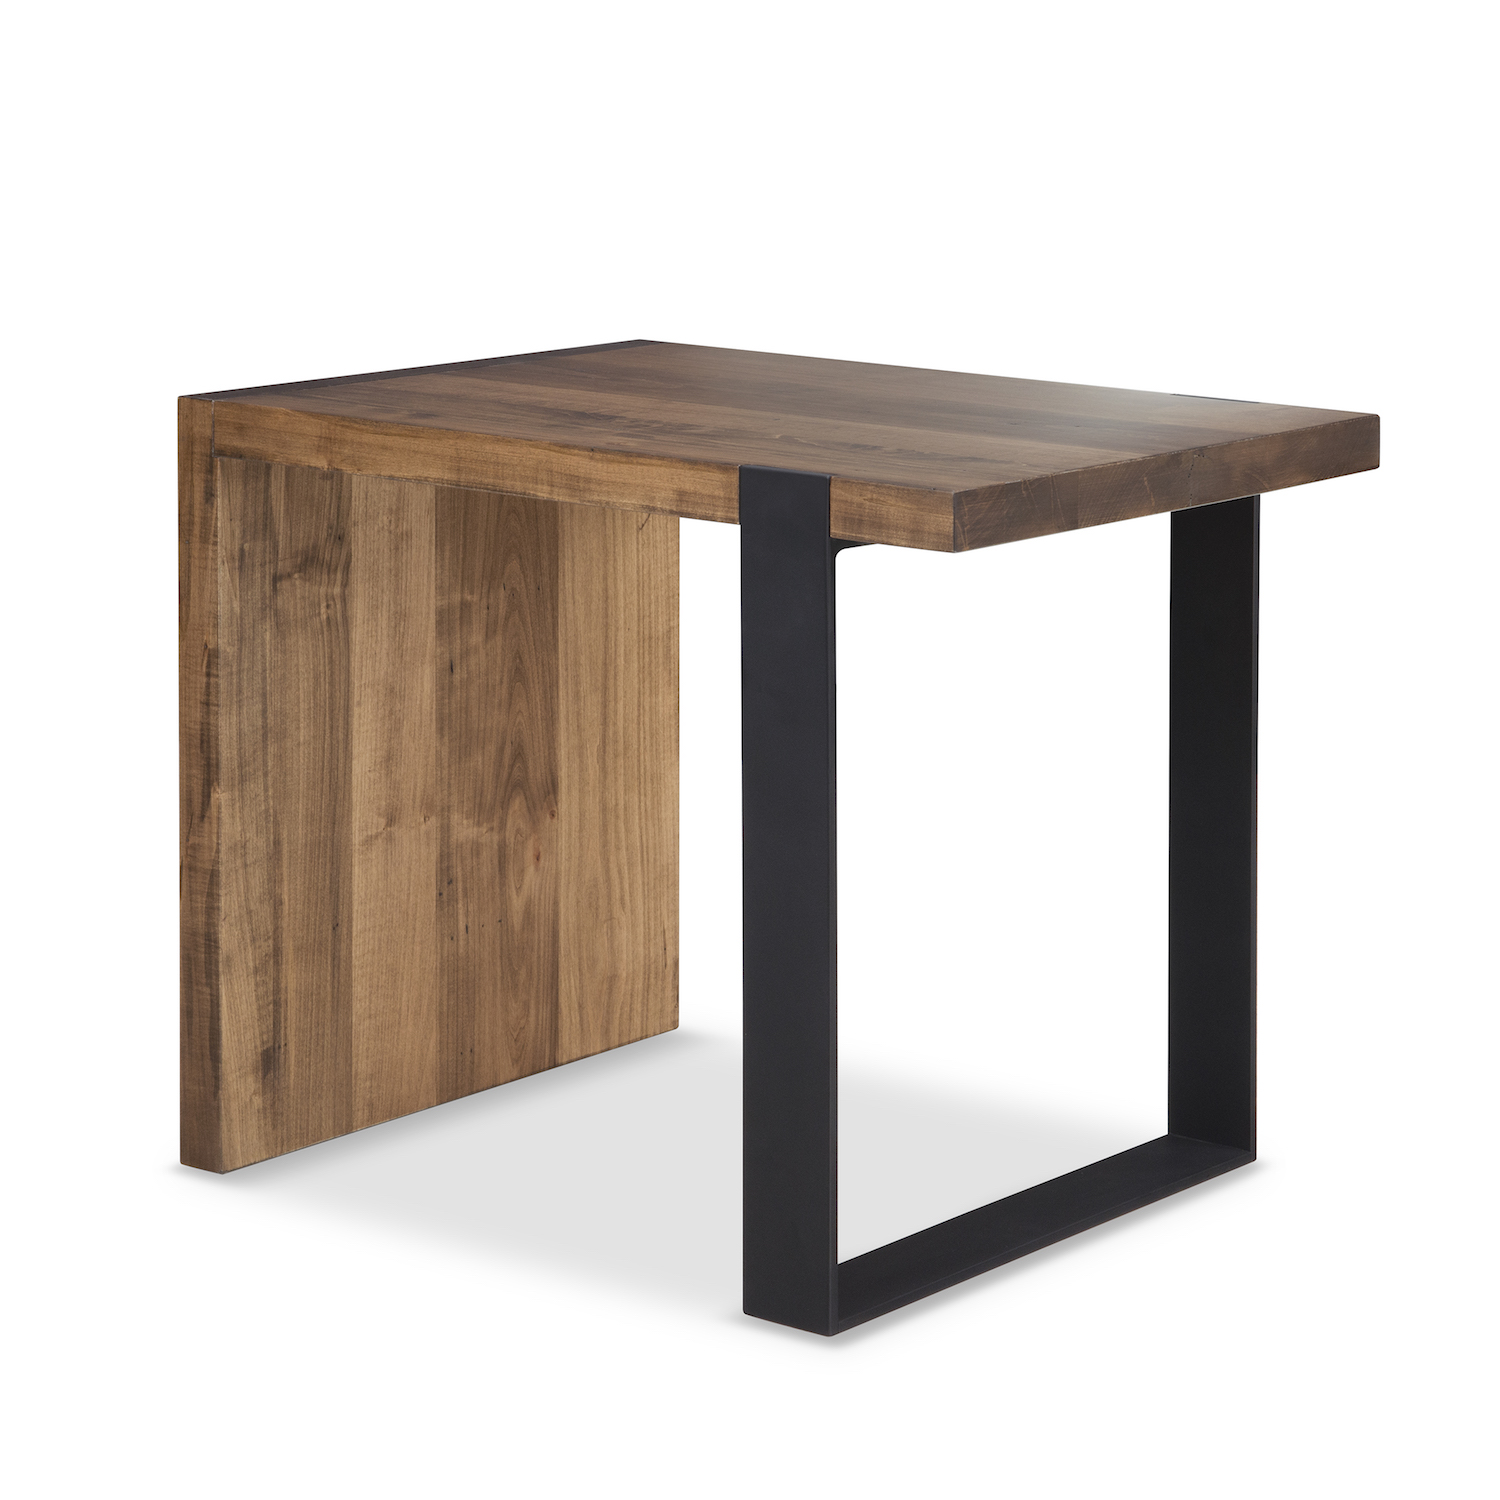 Parkdale_End_Table_Angled-2.jpg